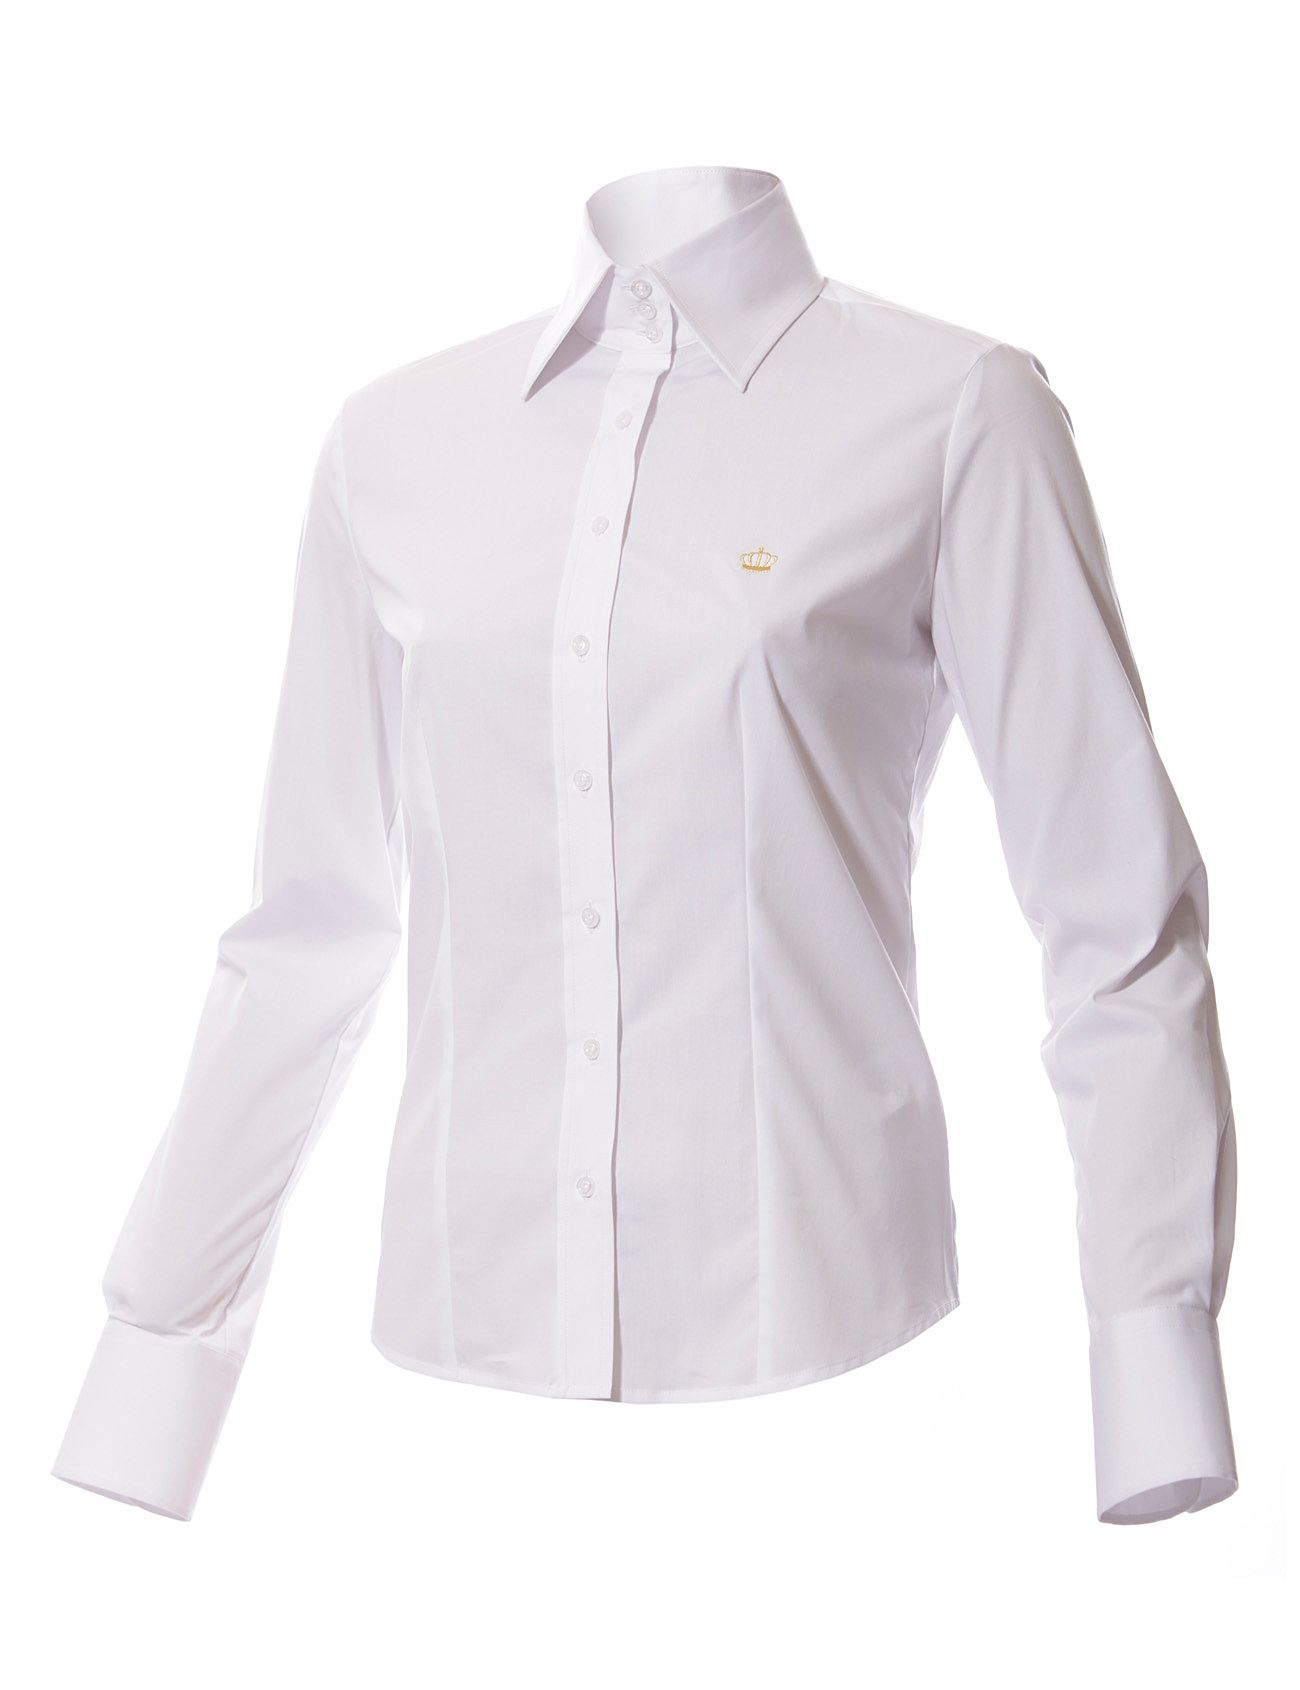 shirt big collar women - Pesquisa Google | my syle | Pinterest ...